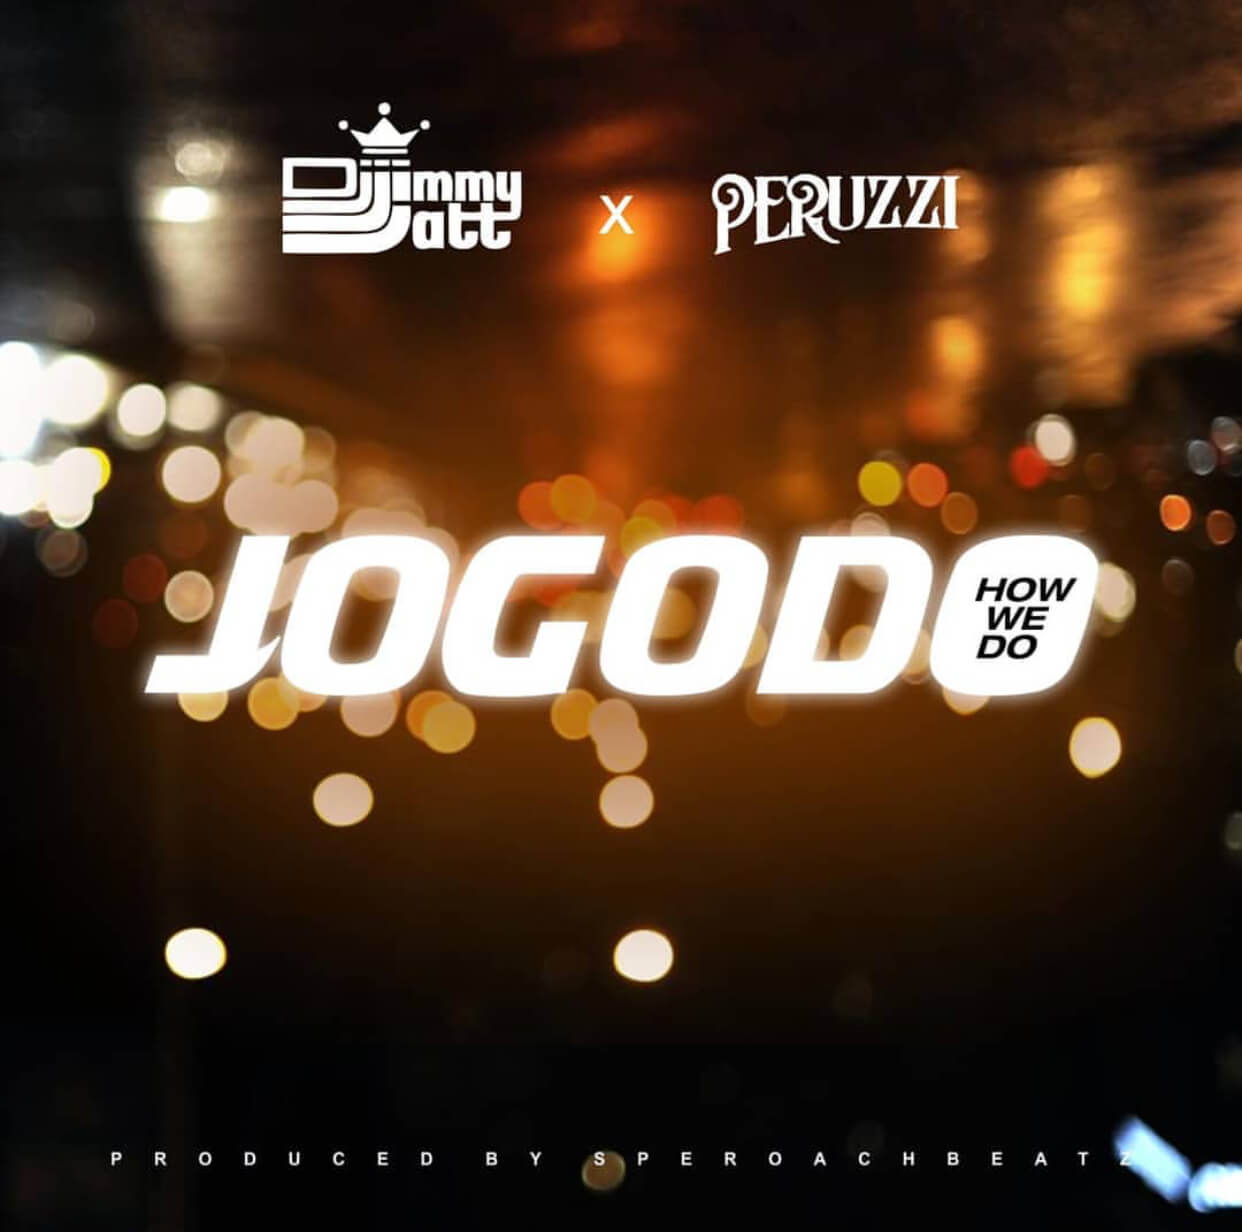 Music: DJ Jimmy Jatt – Jogodo ft. Peruzzi